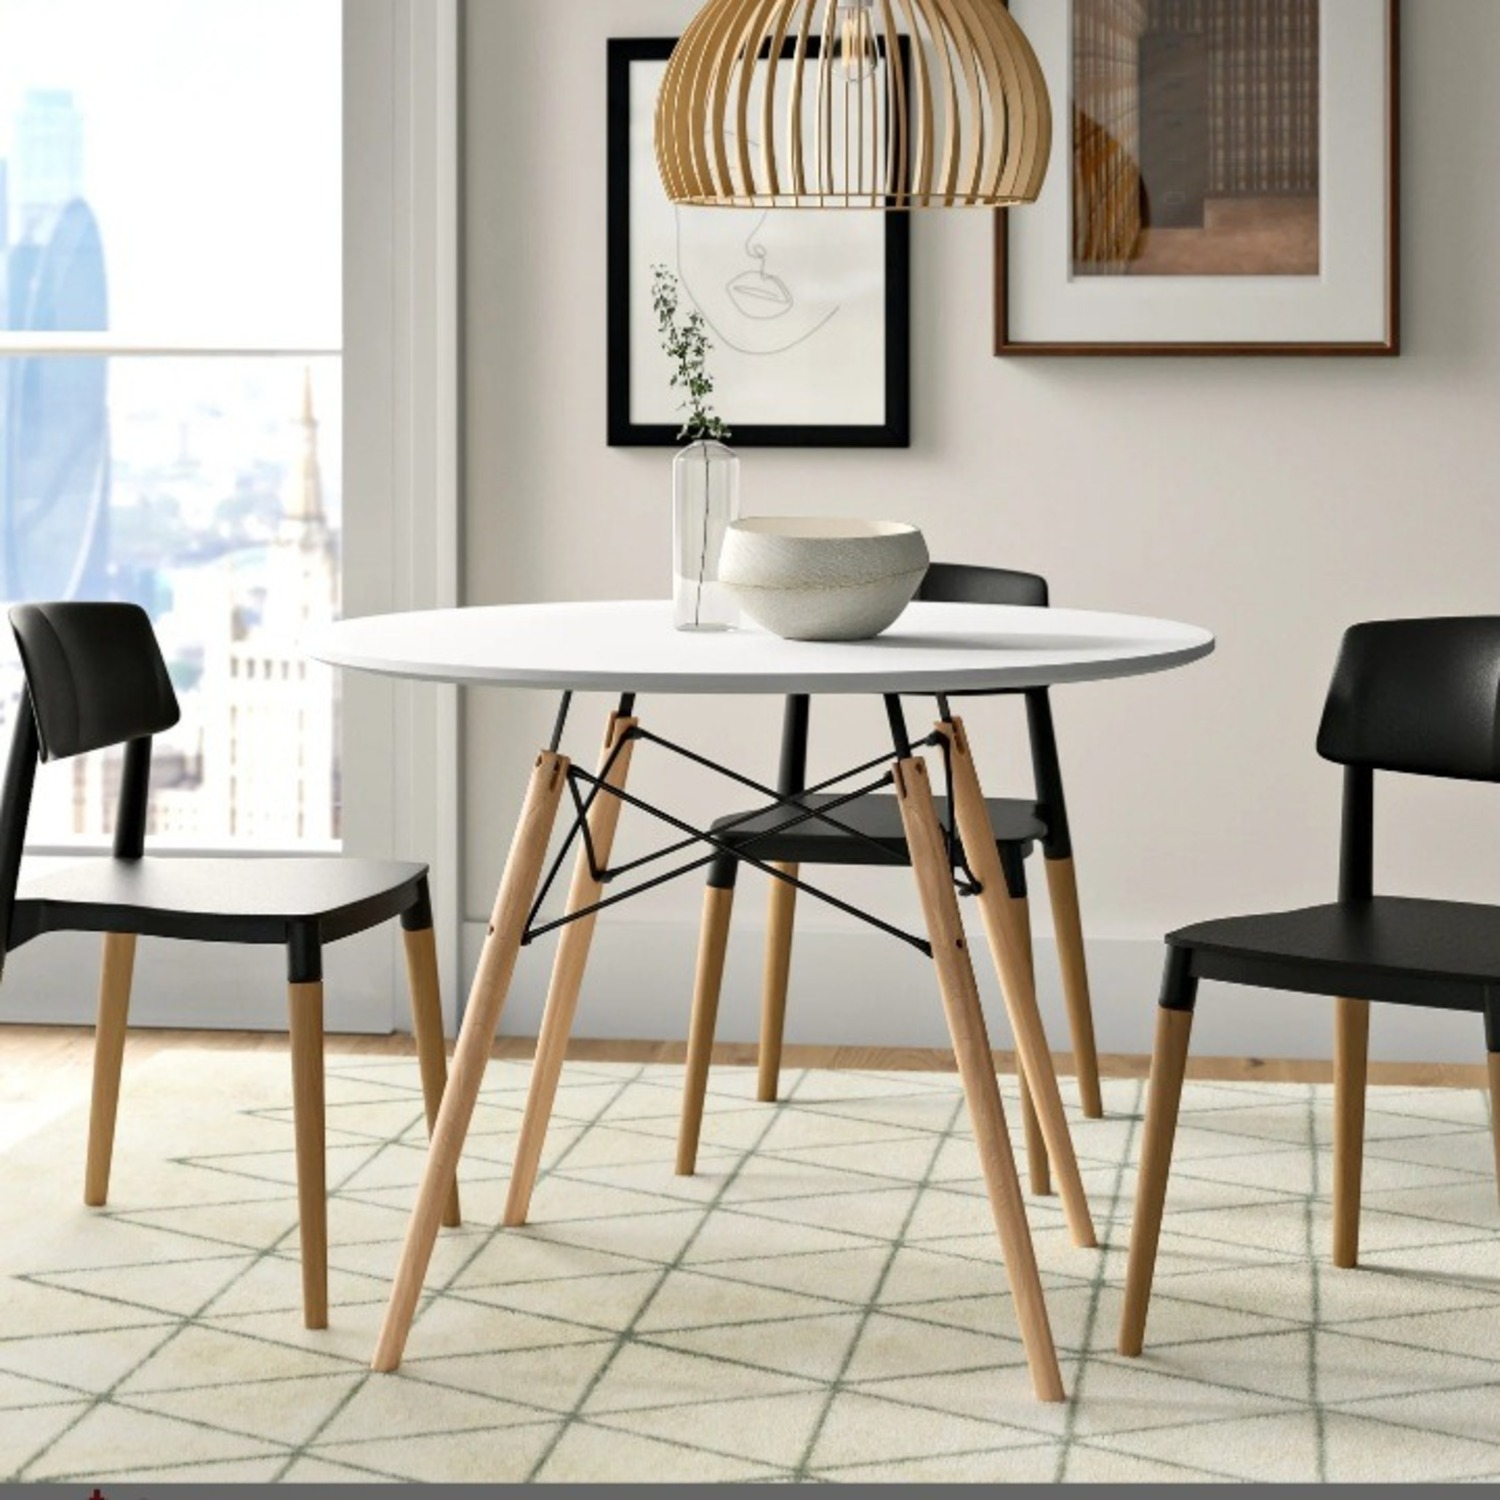 Wayfair Boardway Round Dining Room Table - image-1